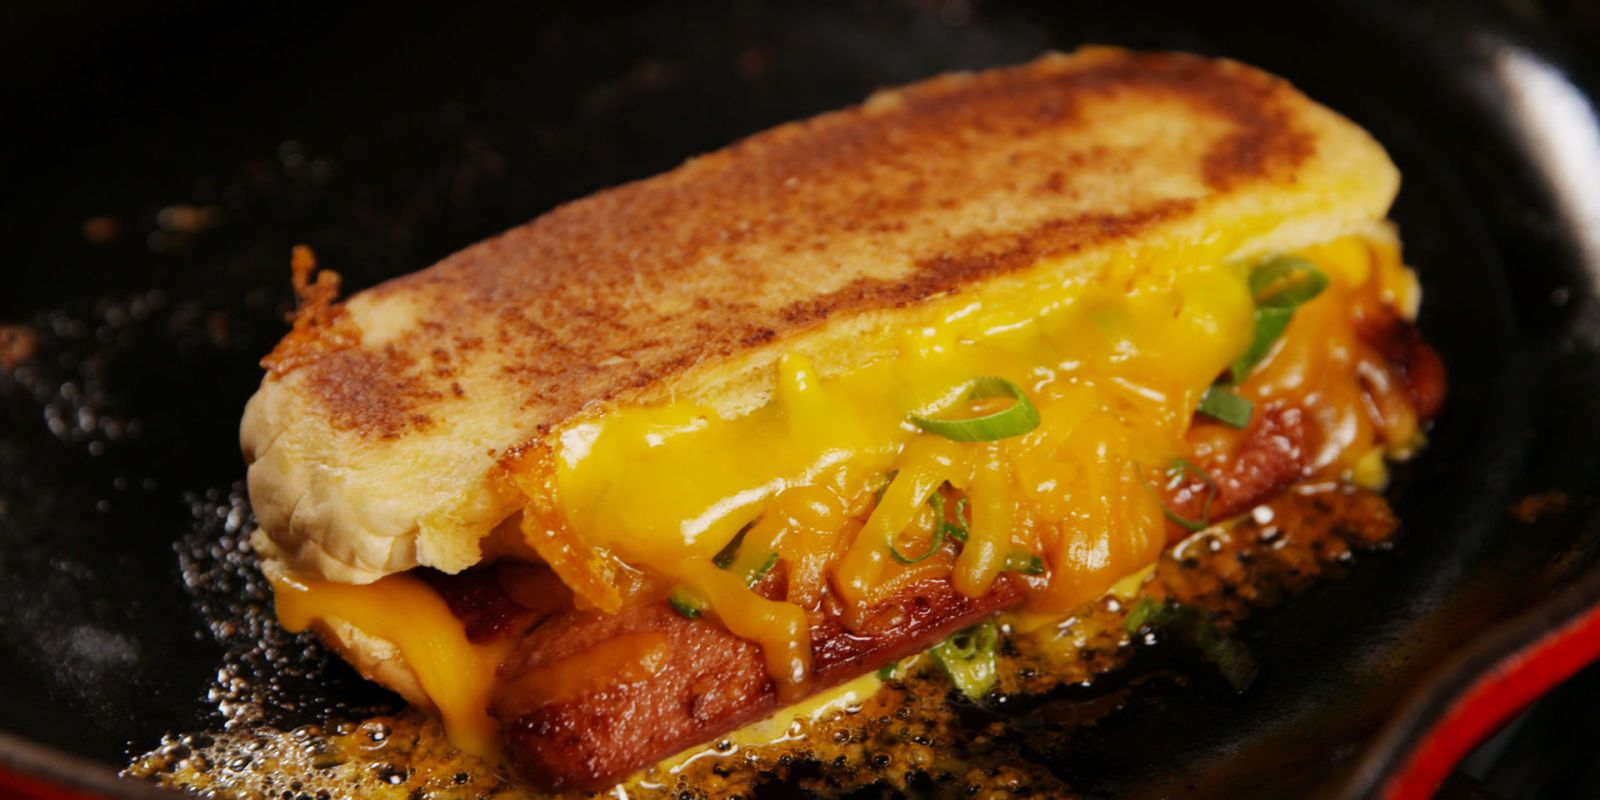 Grilled cheese dogs are going to change the hot dog game